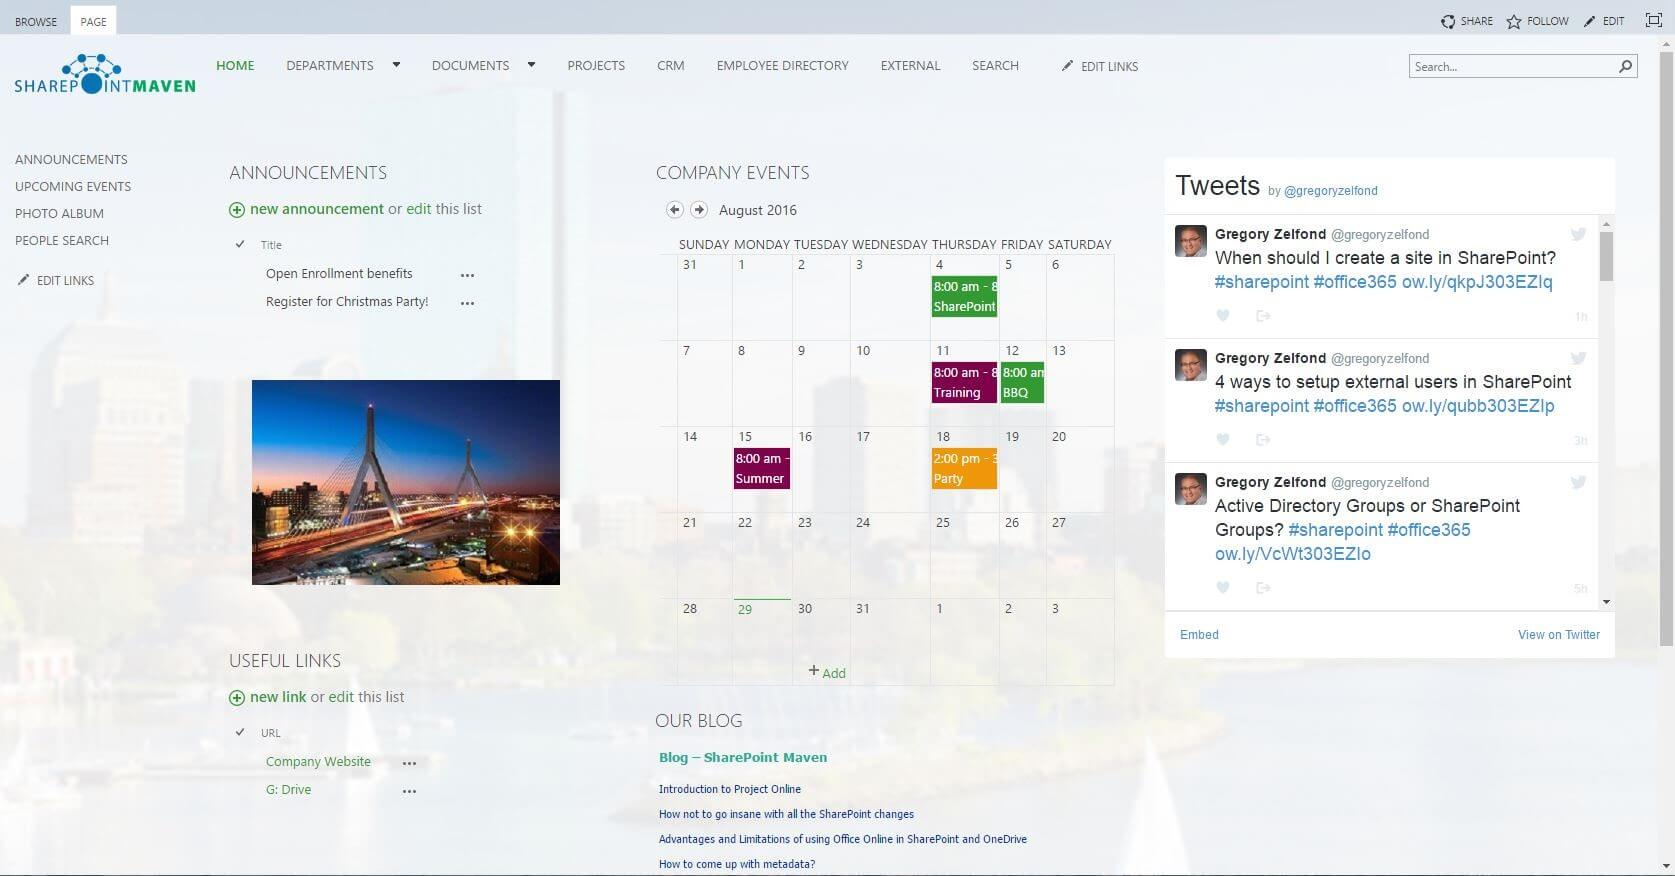 SharePoint Intranet Home Page: 8 Best Practices